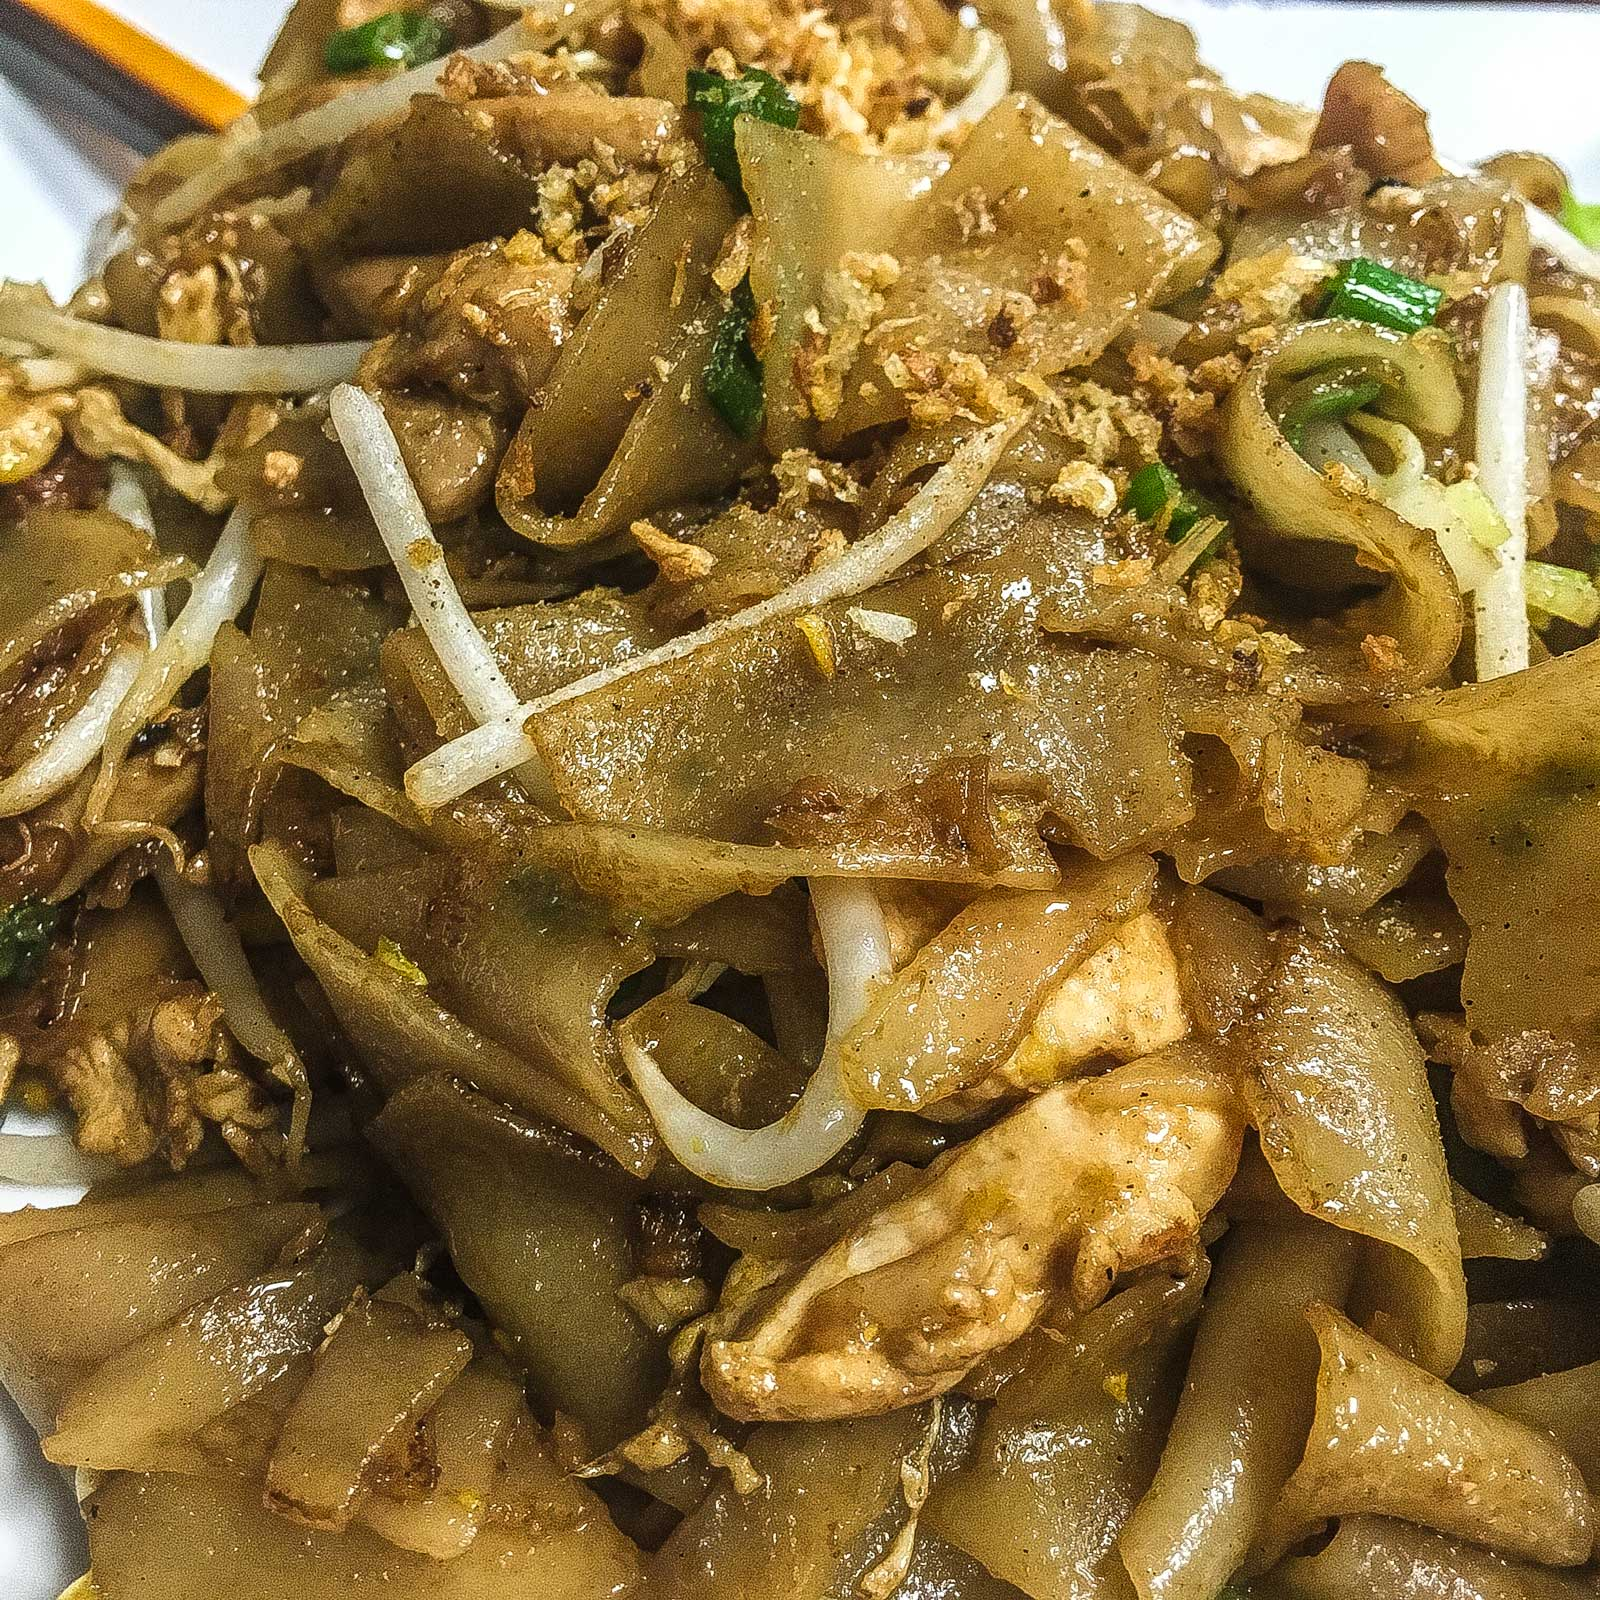 Chicken Noodles at Kruang Tedd